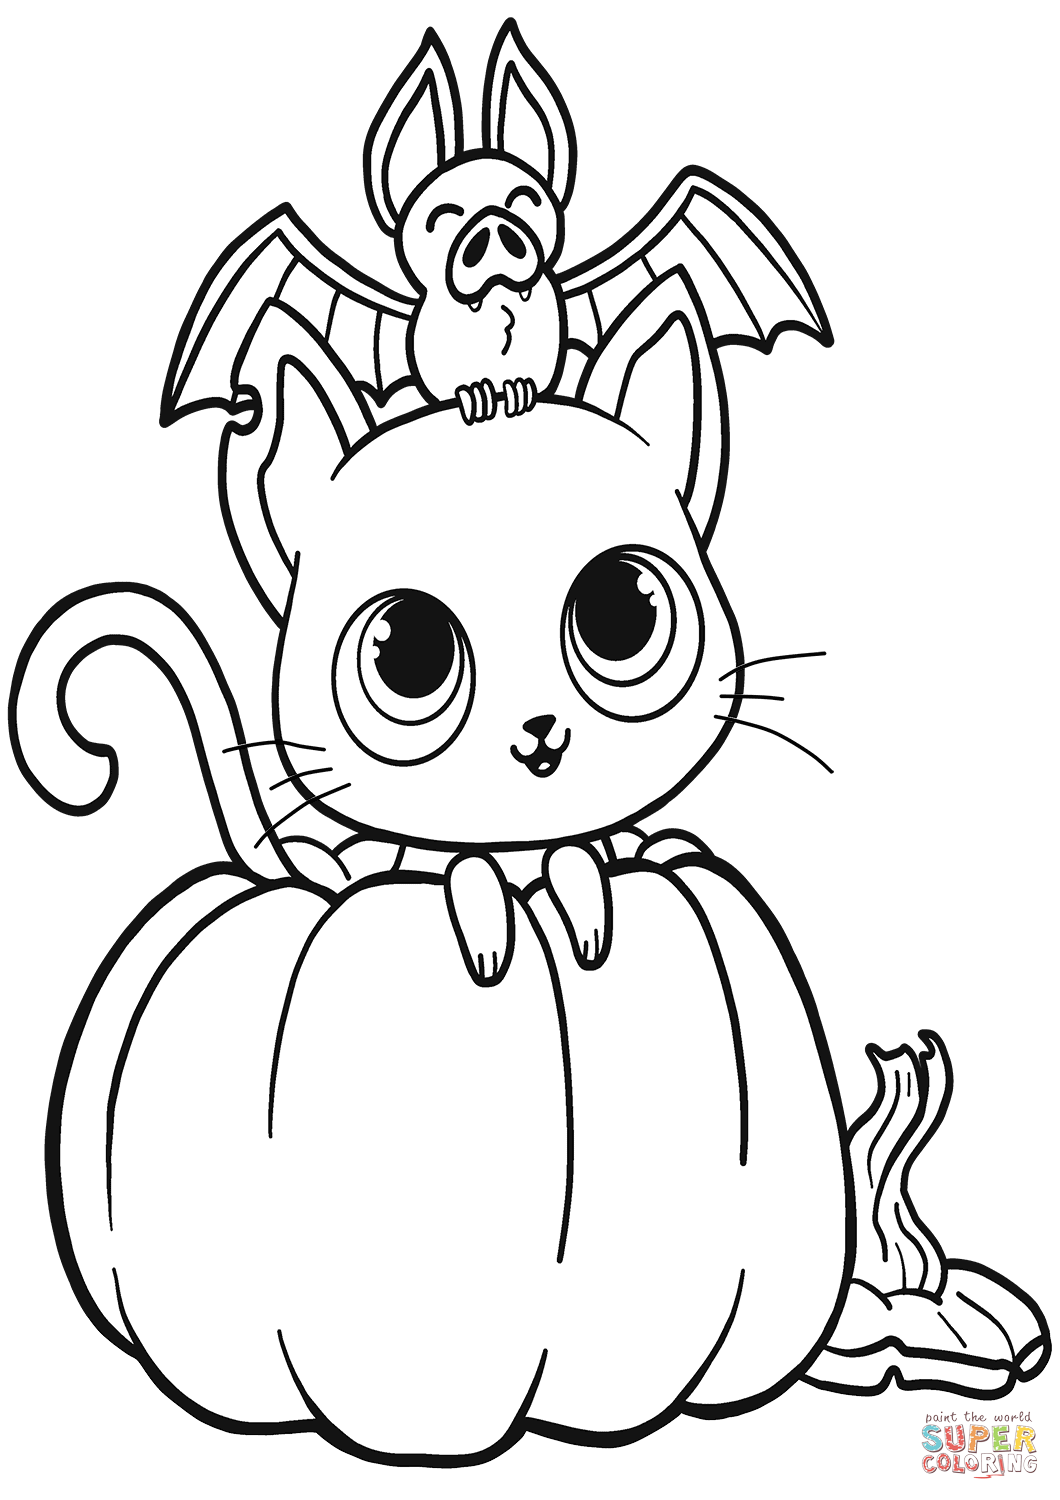 Bat Cat And Pumpkin Coloring Page Free Printable Coloring Pages Coloring Pages Pumpkin Coloring Pages Halloween Coloring Bat Coloring Pages